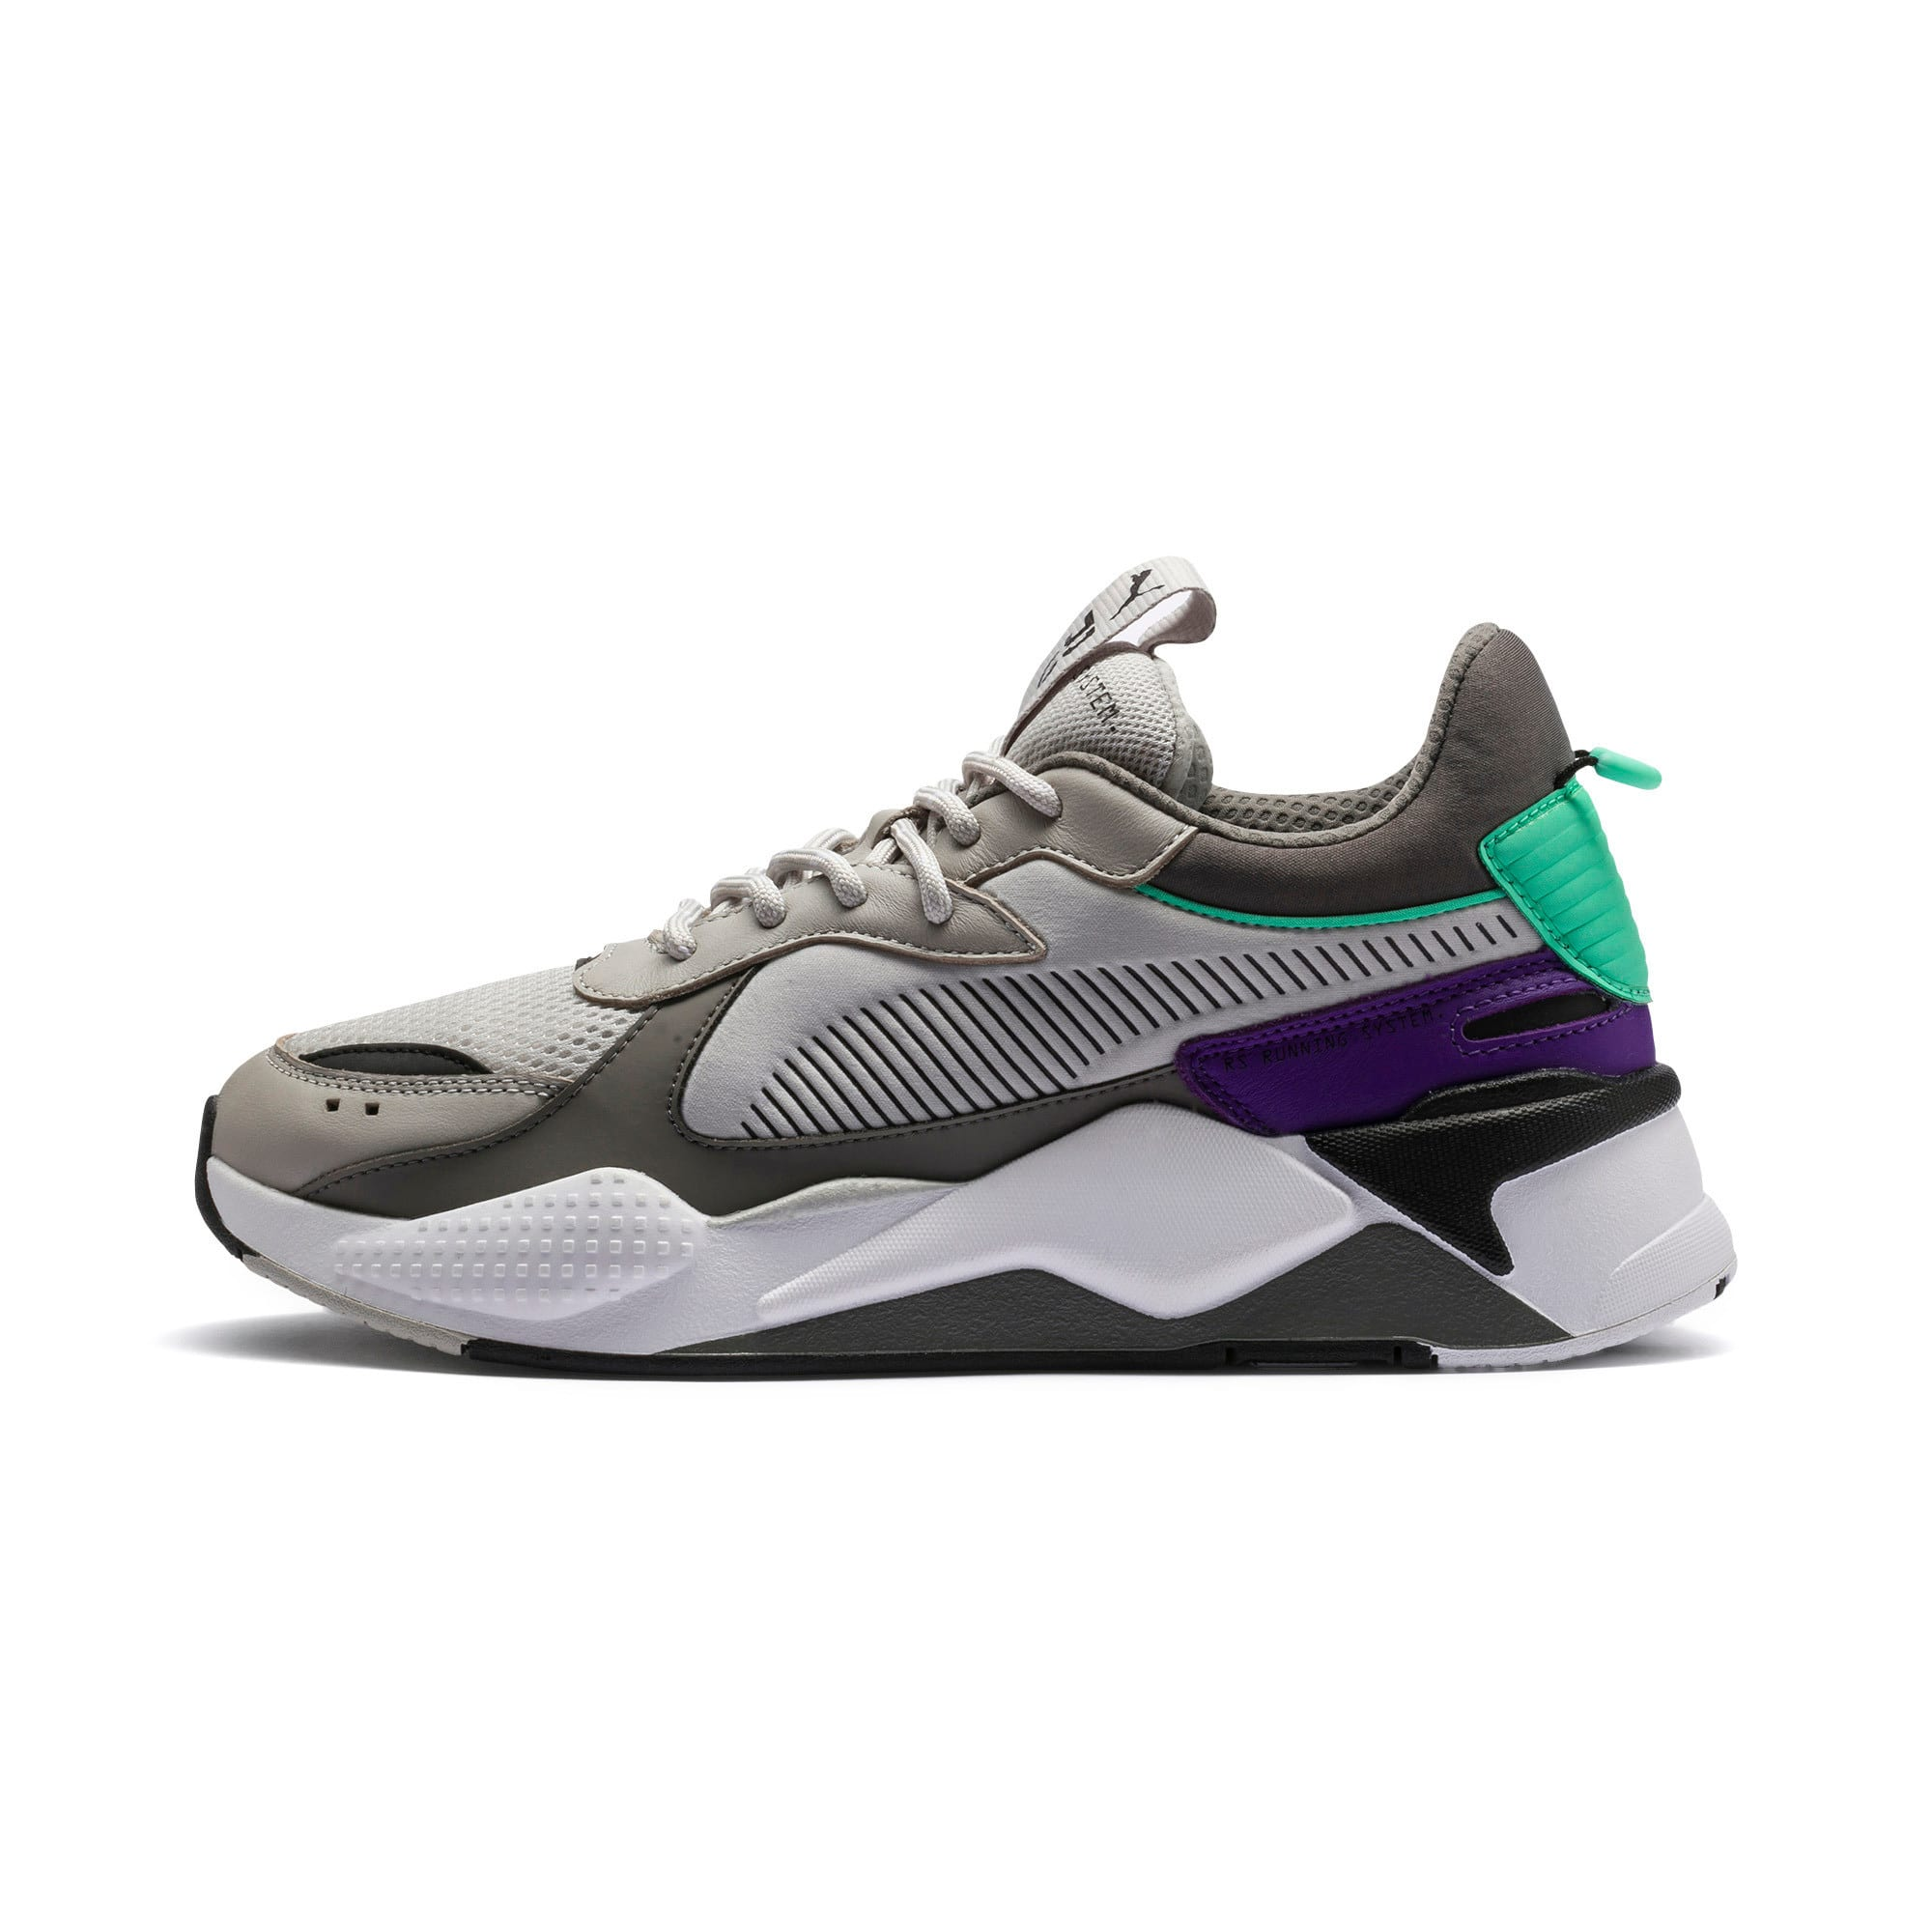 Thumbnail 1 of RS-X Tracks Trainers, Gray Violet-Charcoal Gray, medium